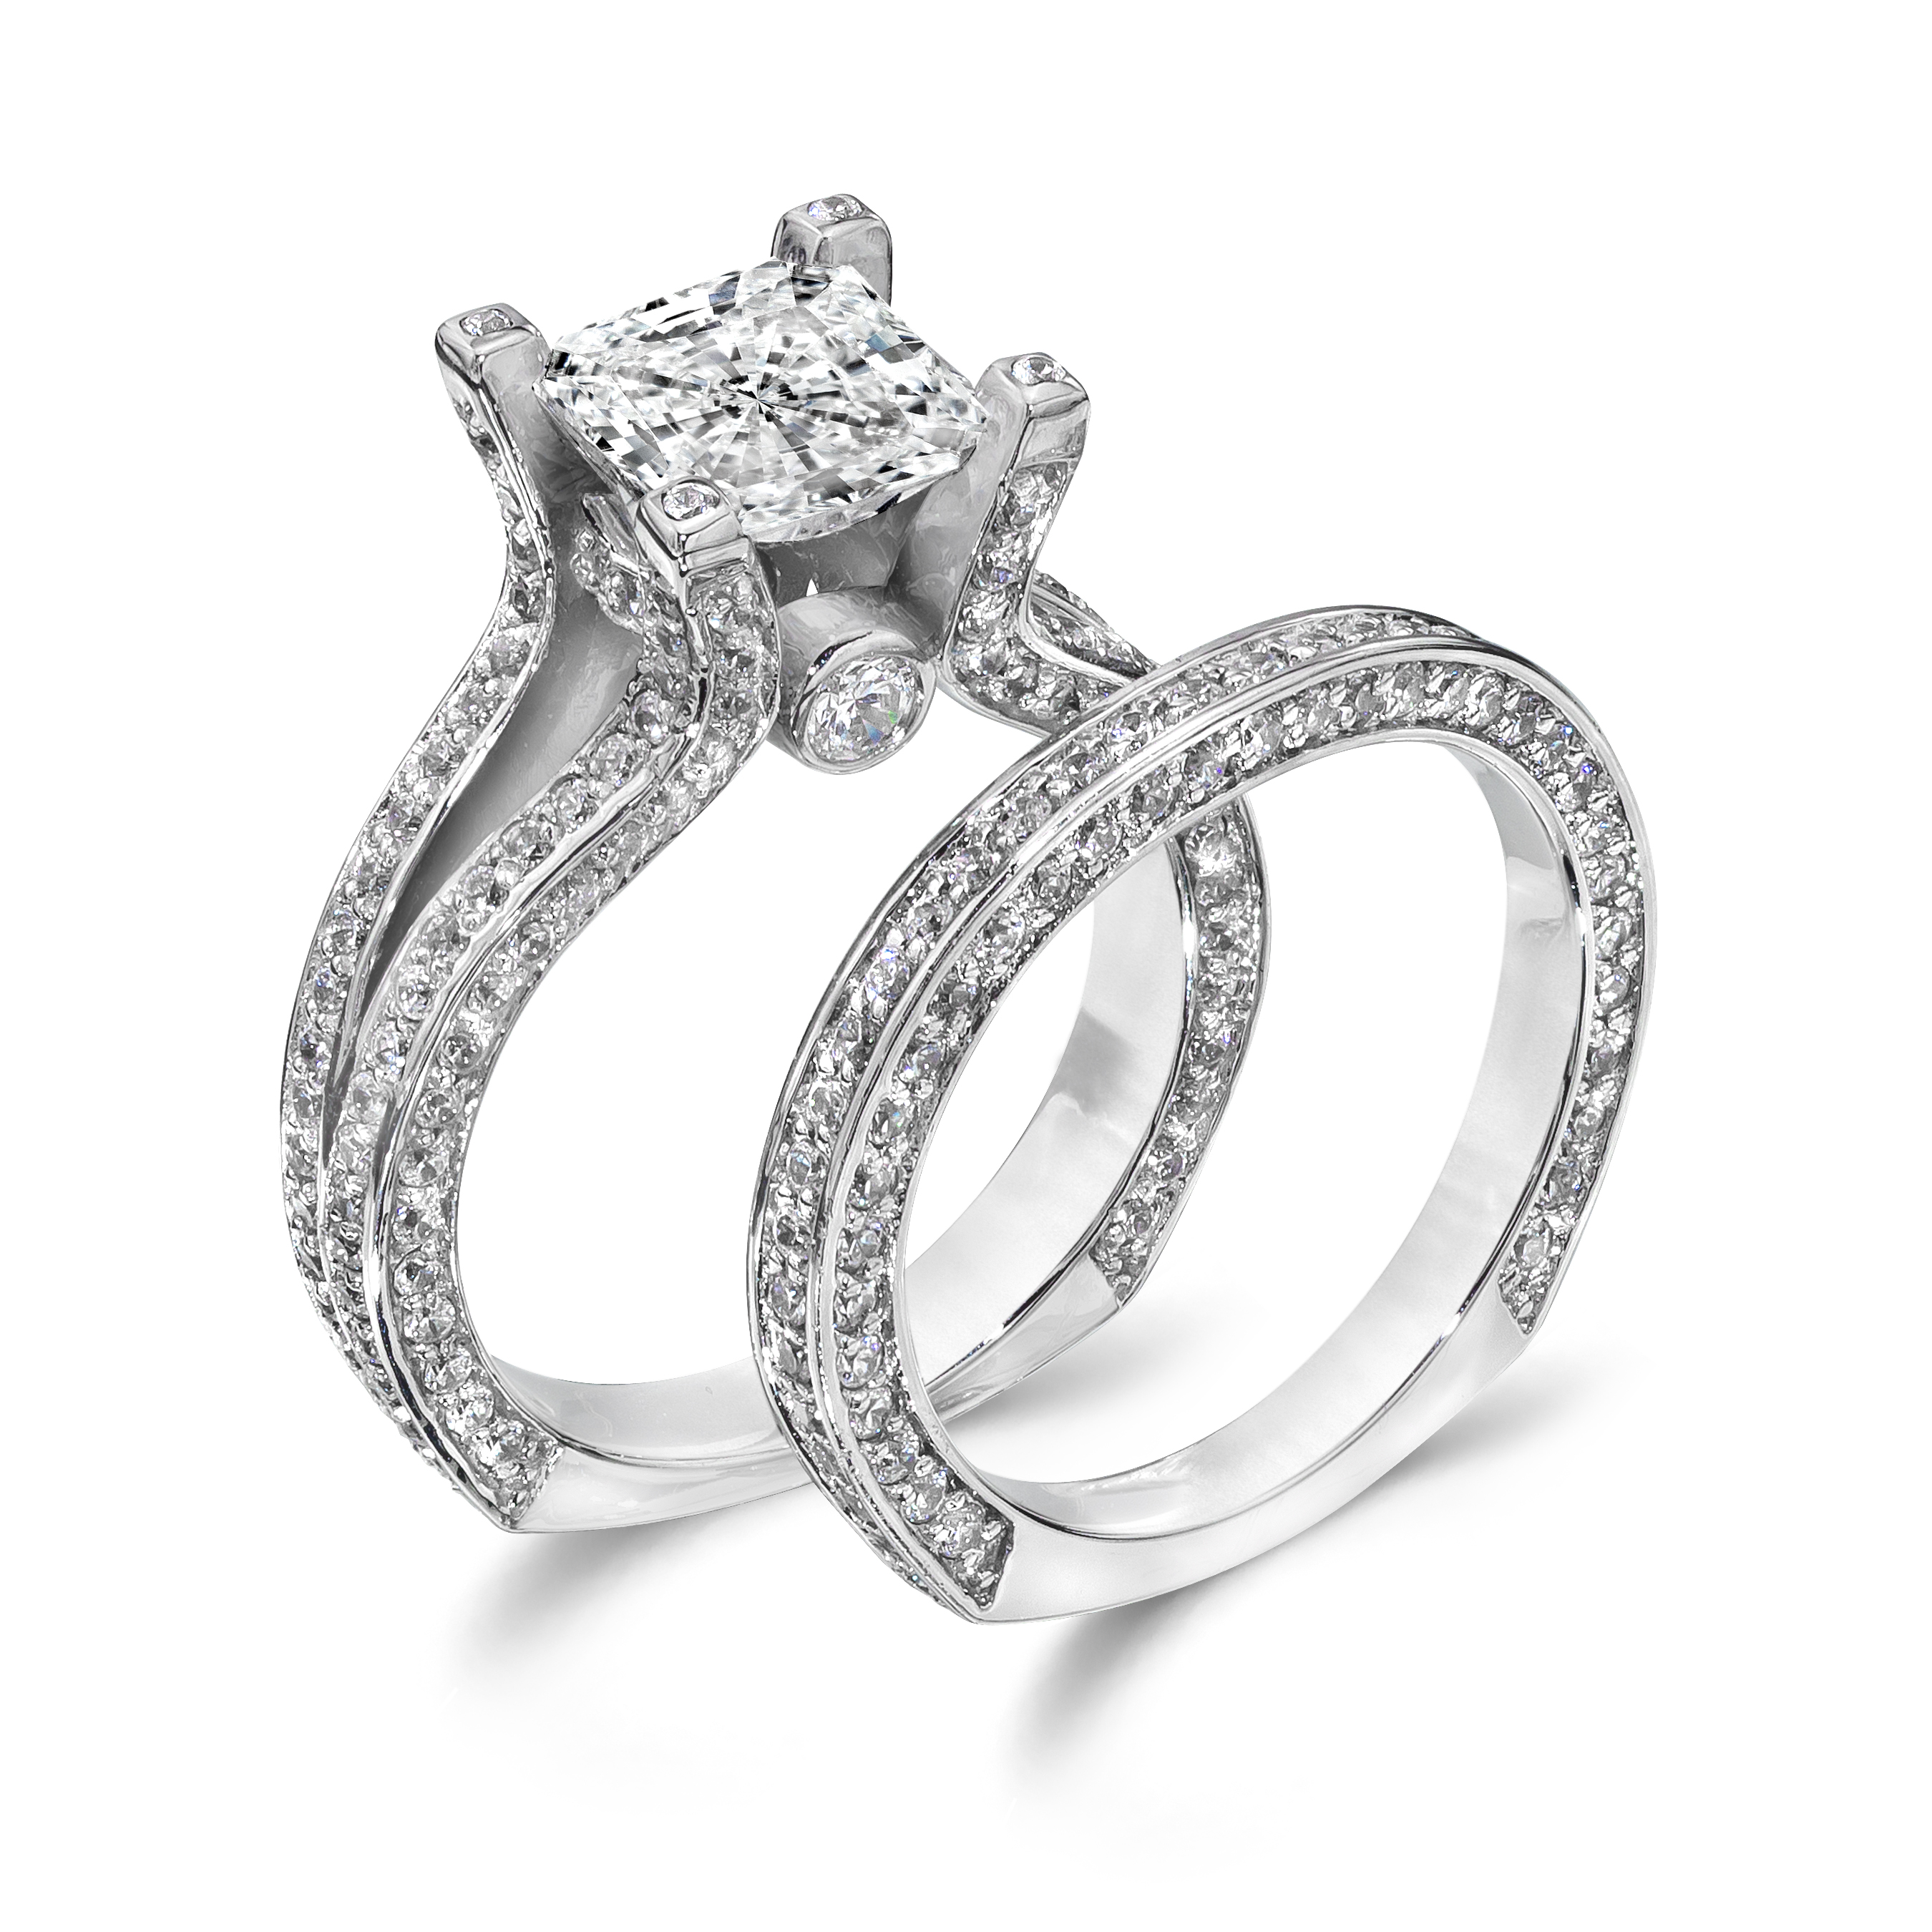 quality cz wedding ring sets jared wedding rings Quality Cz Wedding Rings